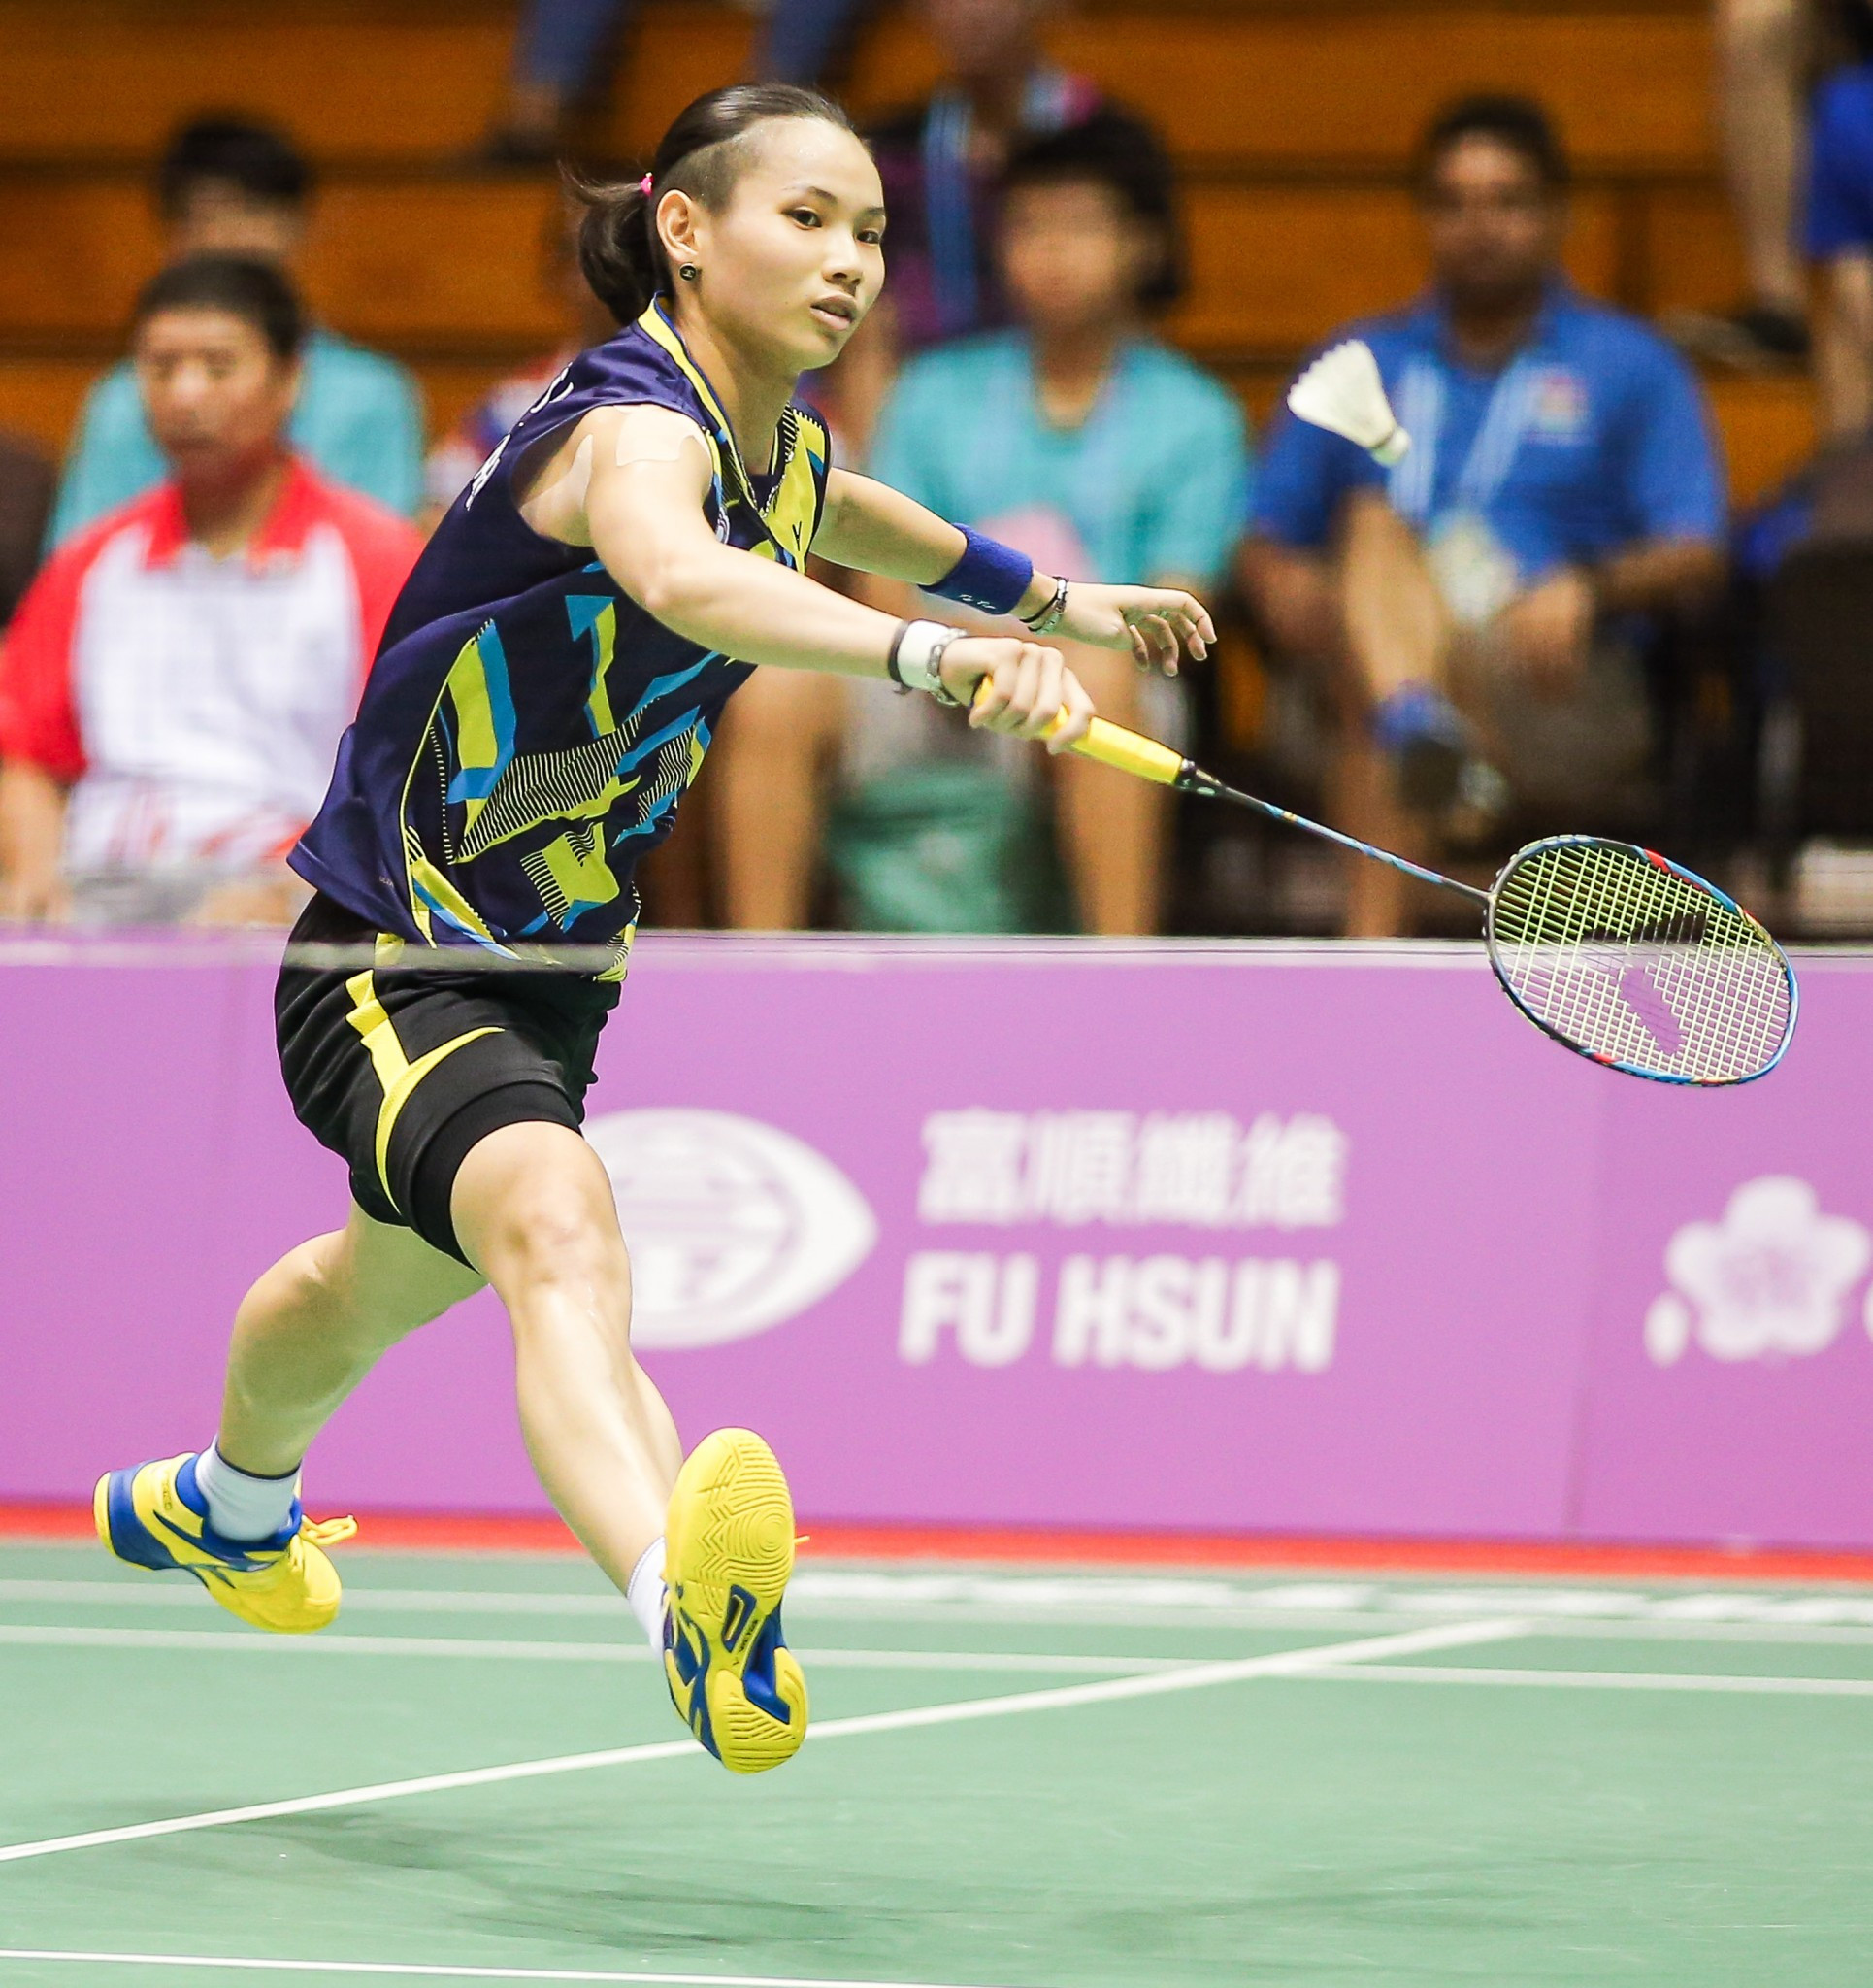 Tai Tzu-ying was one of four gold medallists for the hosts in badminton today ©Taipei 2017